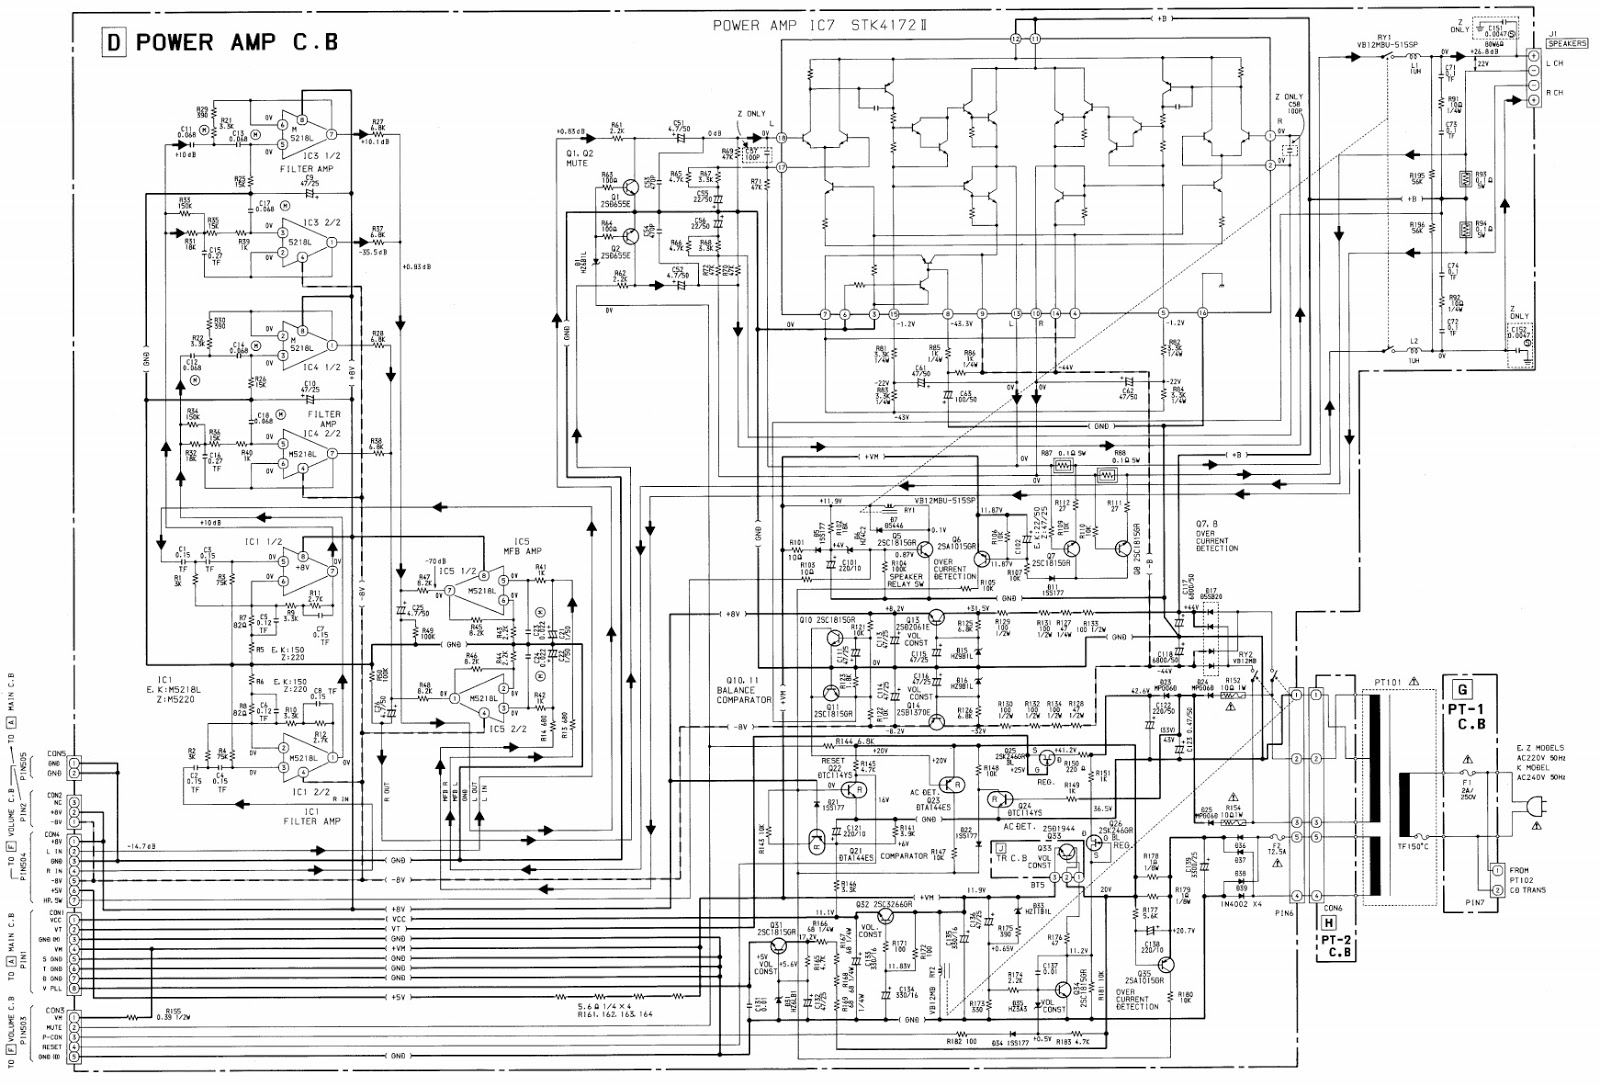 Aiwa NSX-800 Compact disc Stereo system – schematic and PWBs